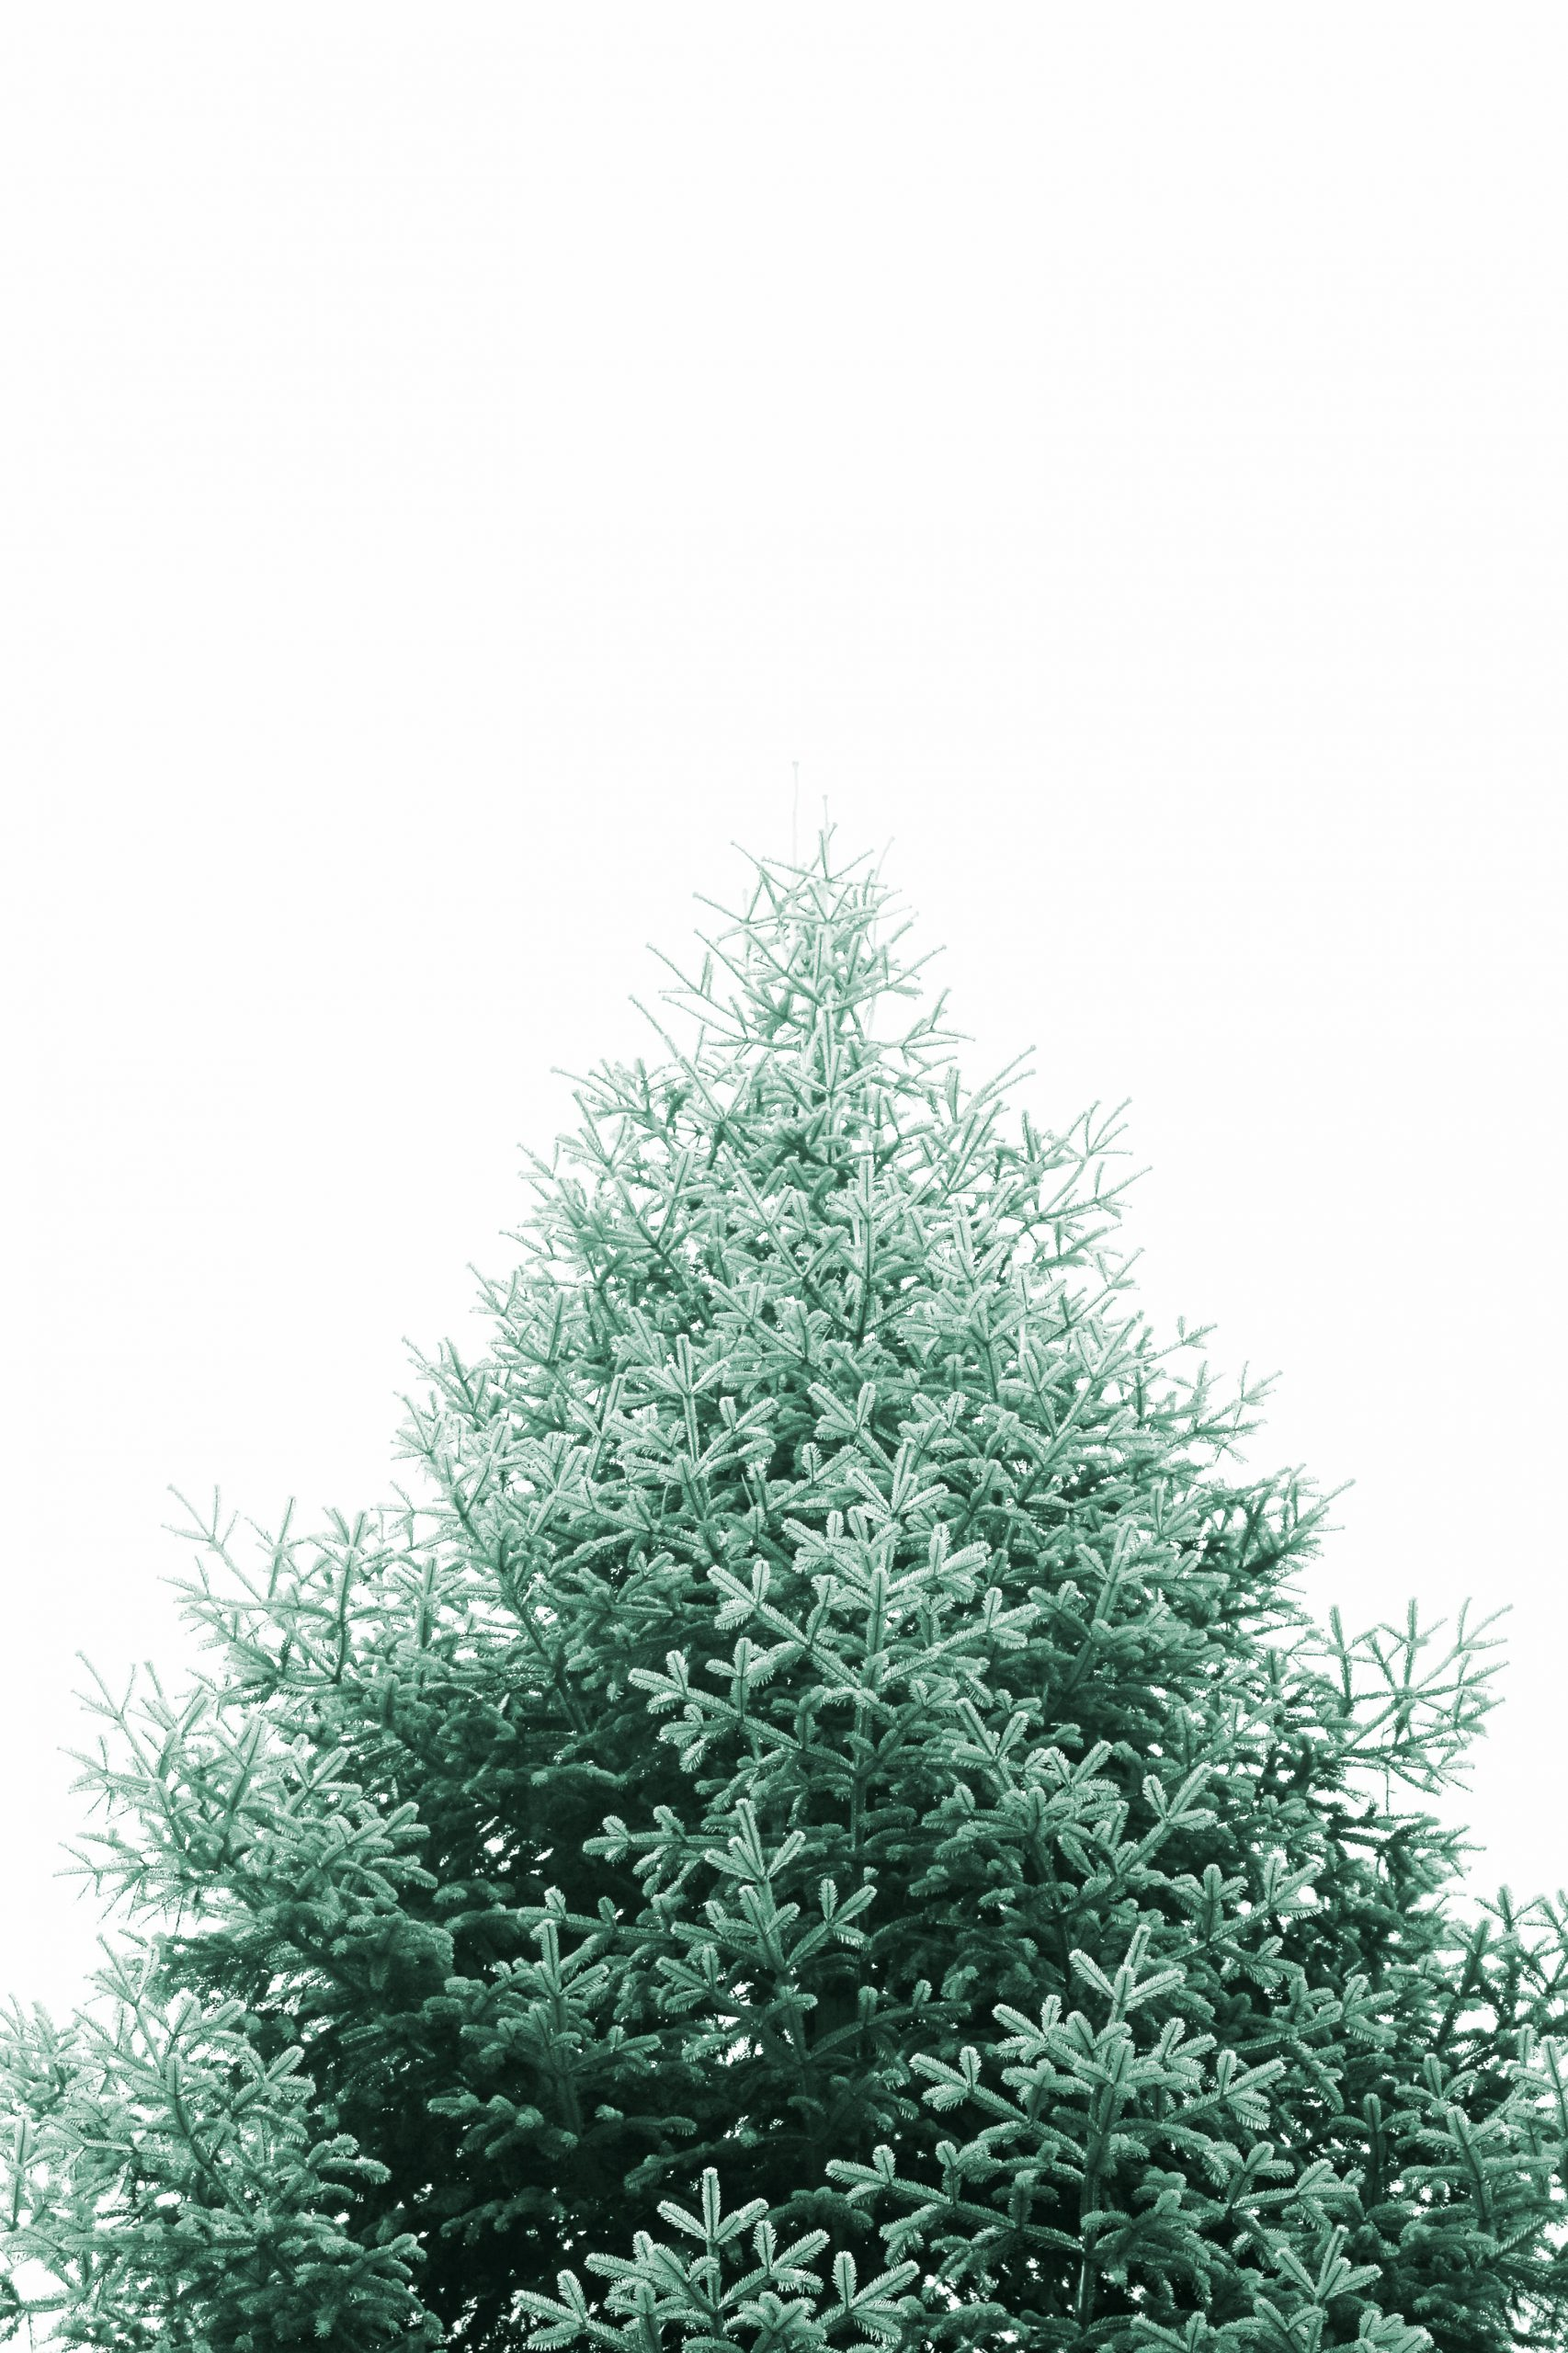 Christmas For All Pickup 2020 Used Christmas Tree Pick up 2020 – Berlin&friends